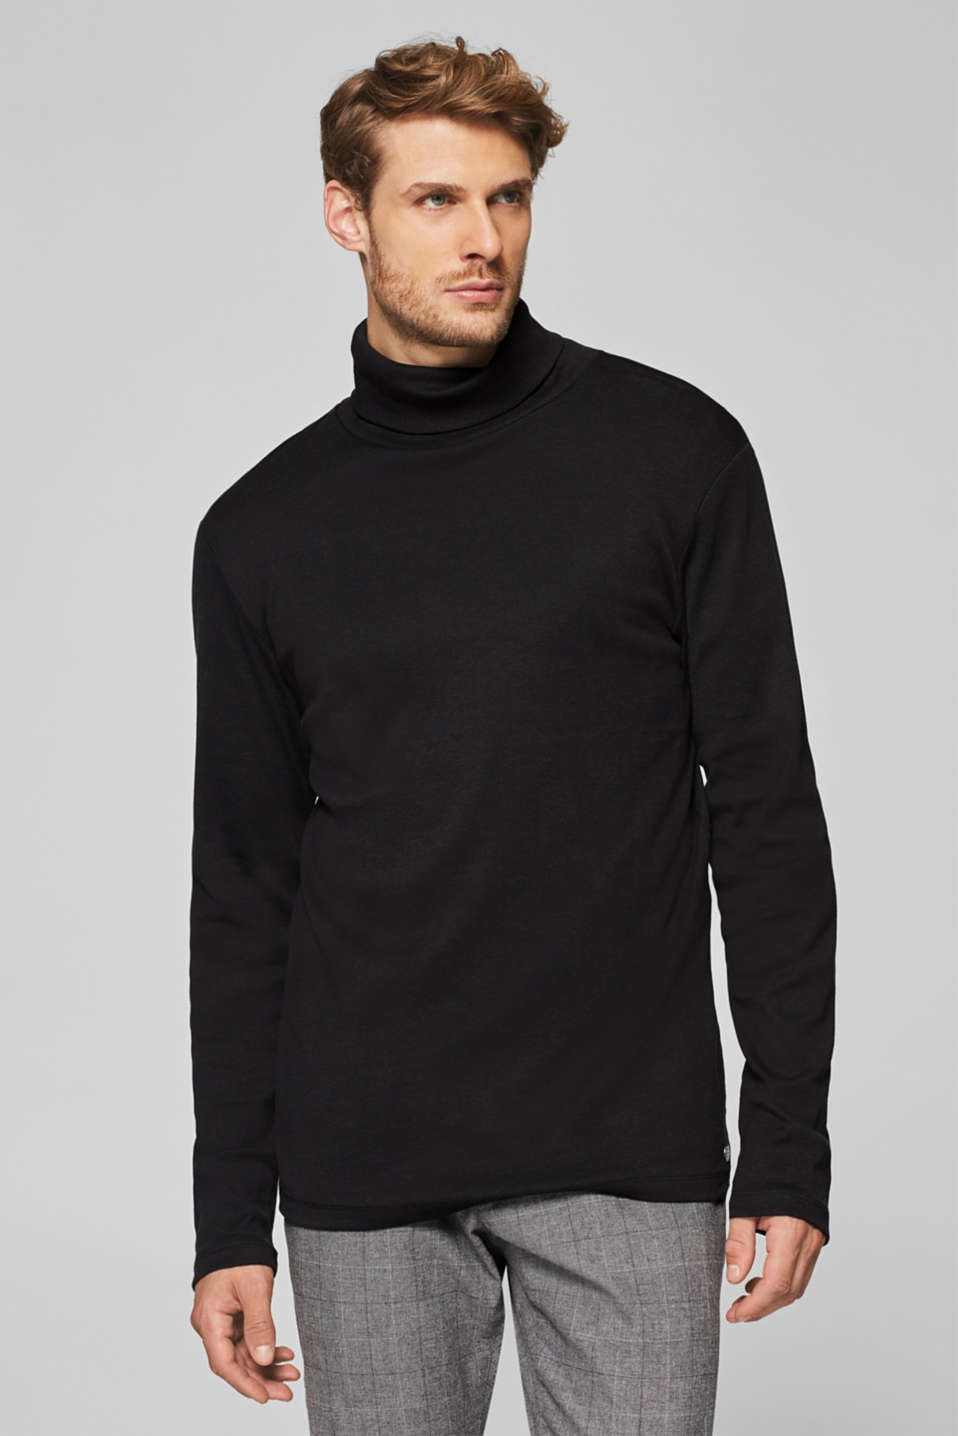 Esprit - Jersey long sleeve top with a polo neck, 100% cotton